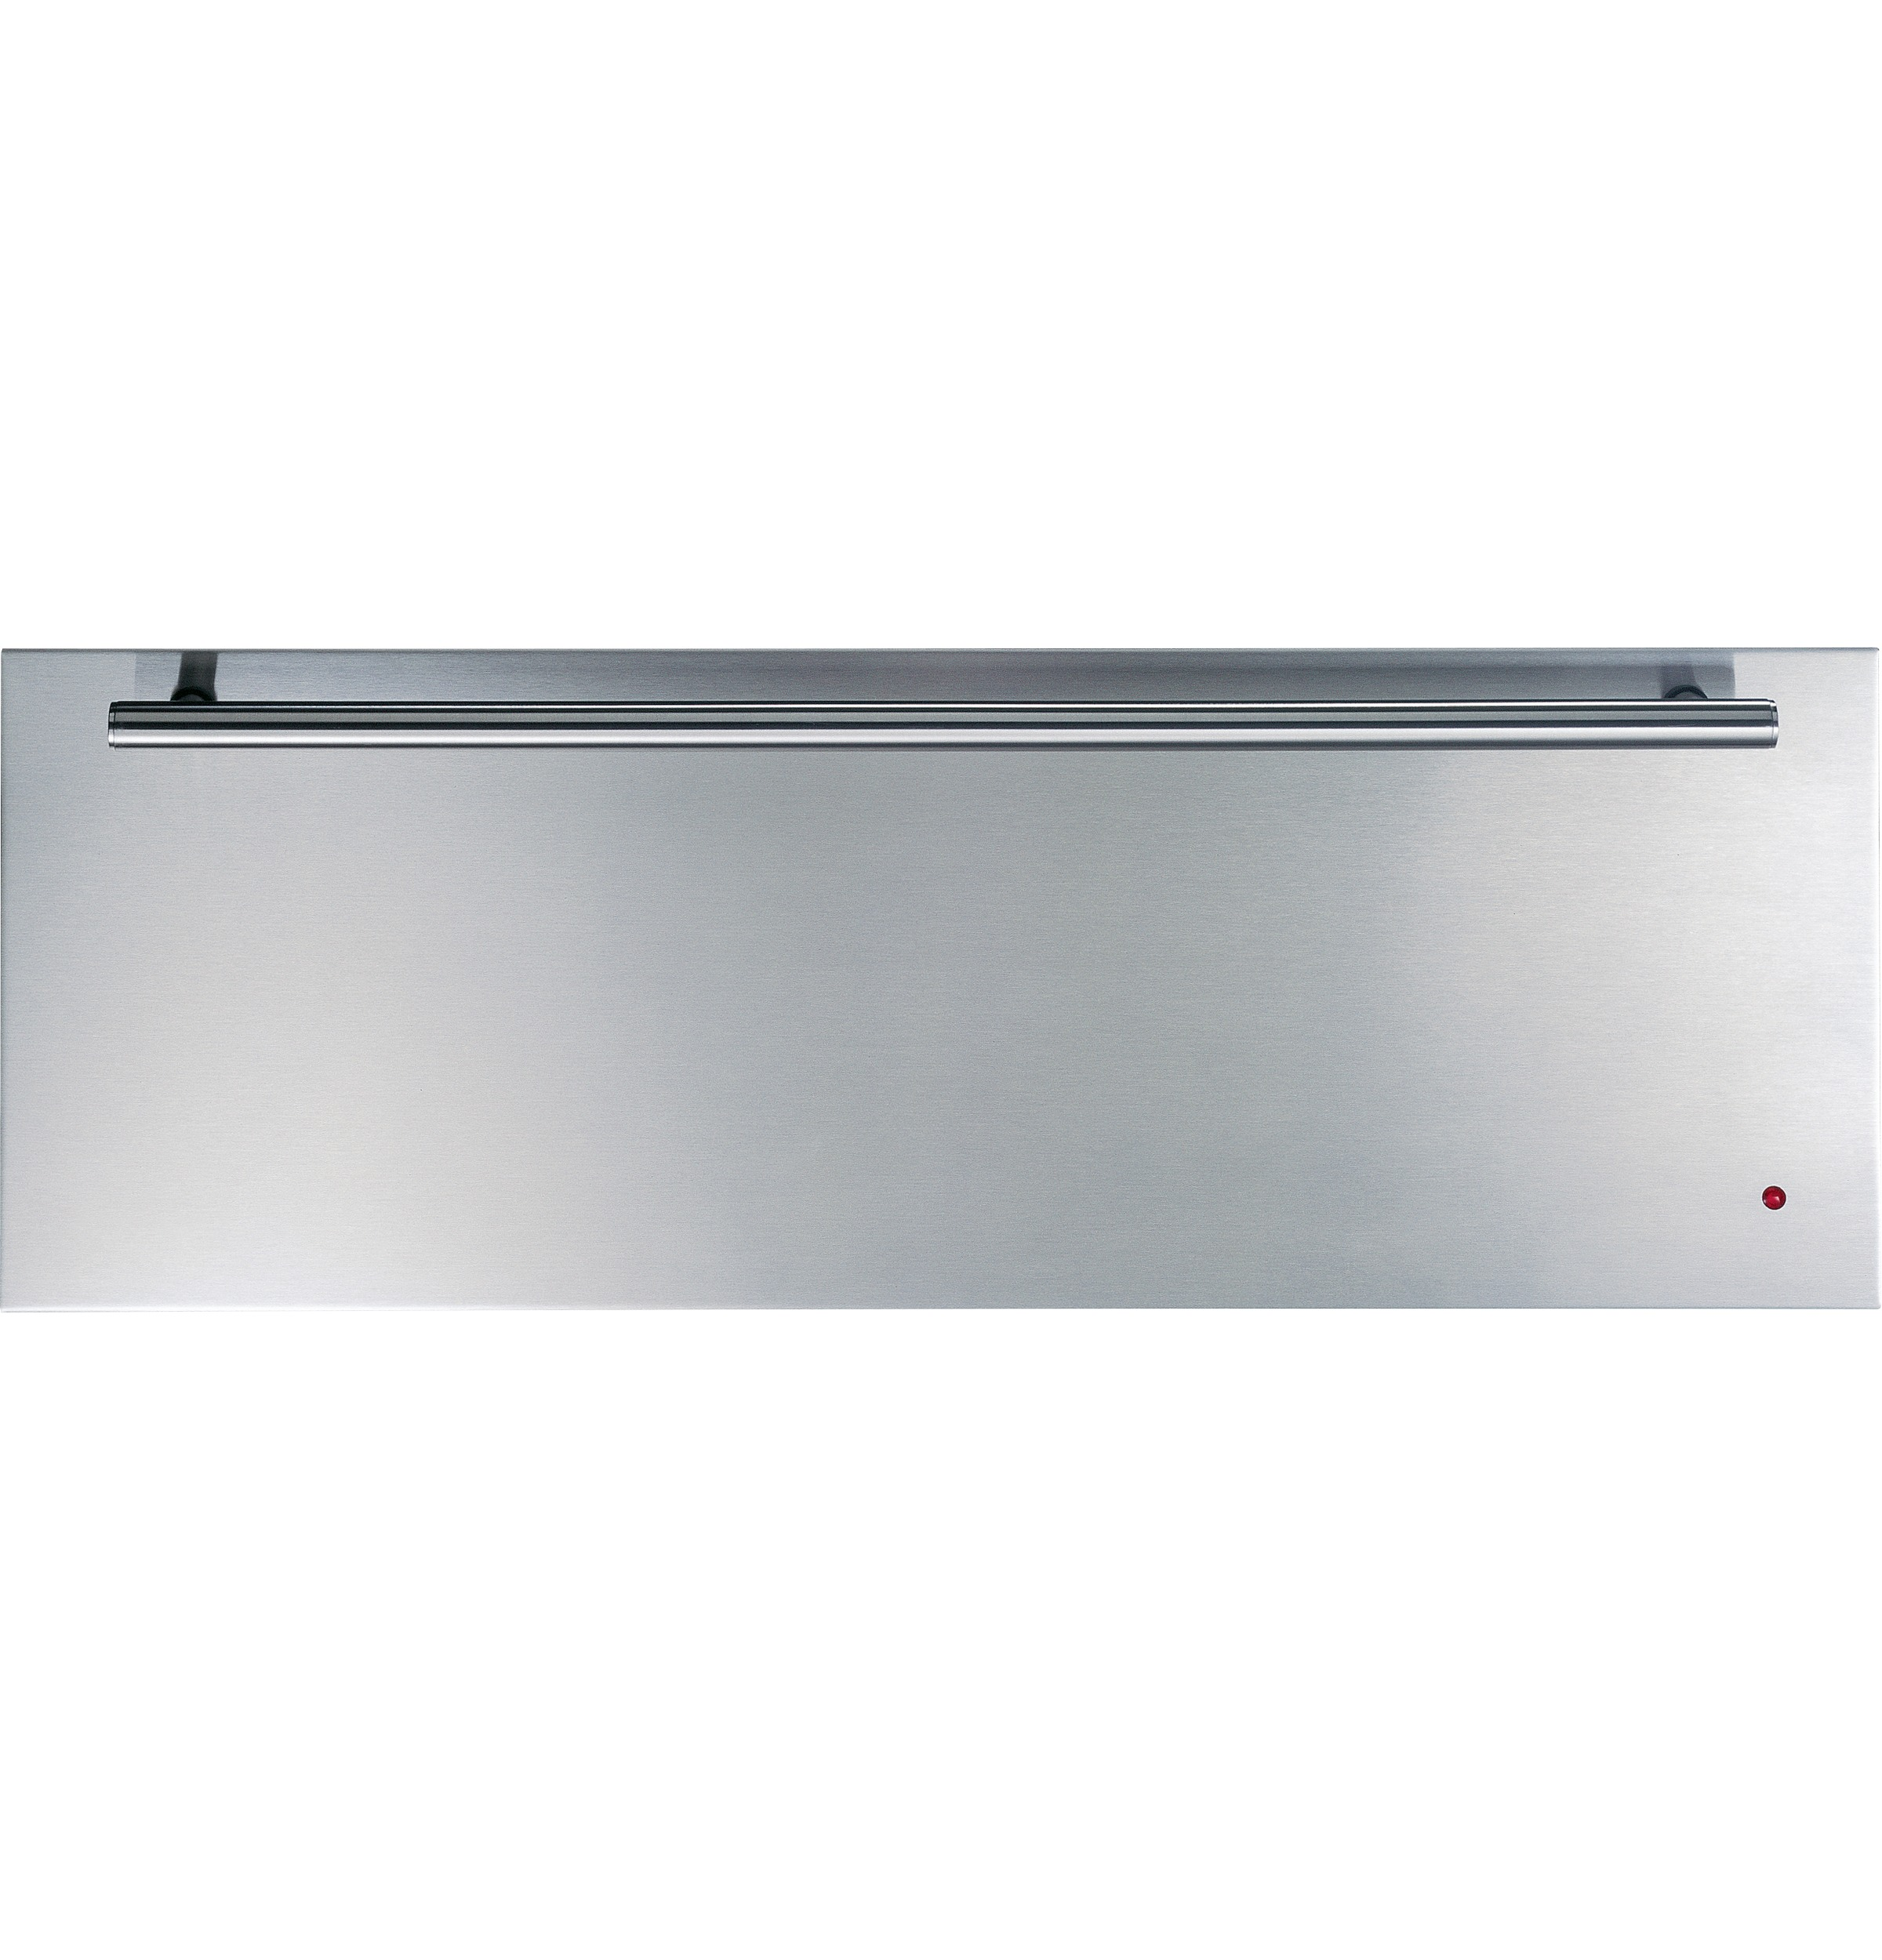 "Monogram Monogram 30"" Stainless Steel Warming Drawer"